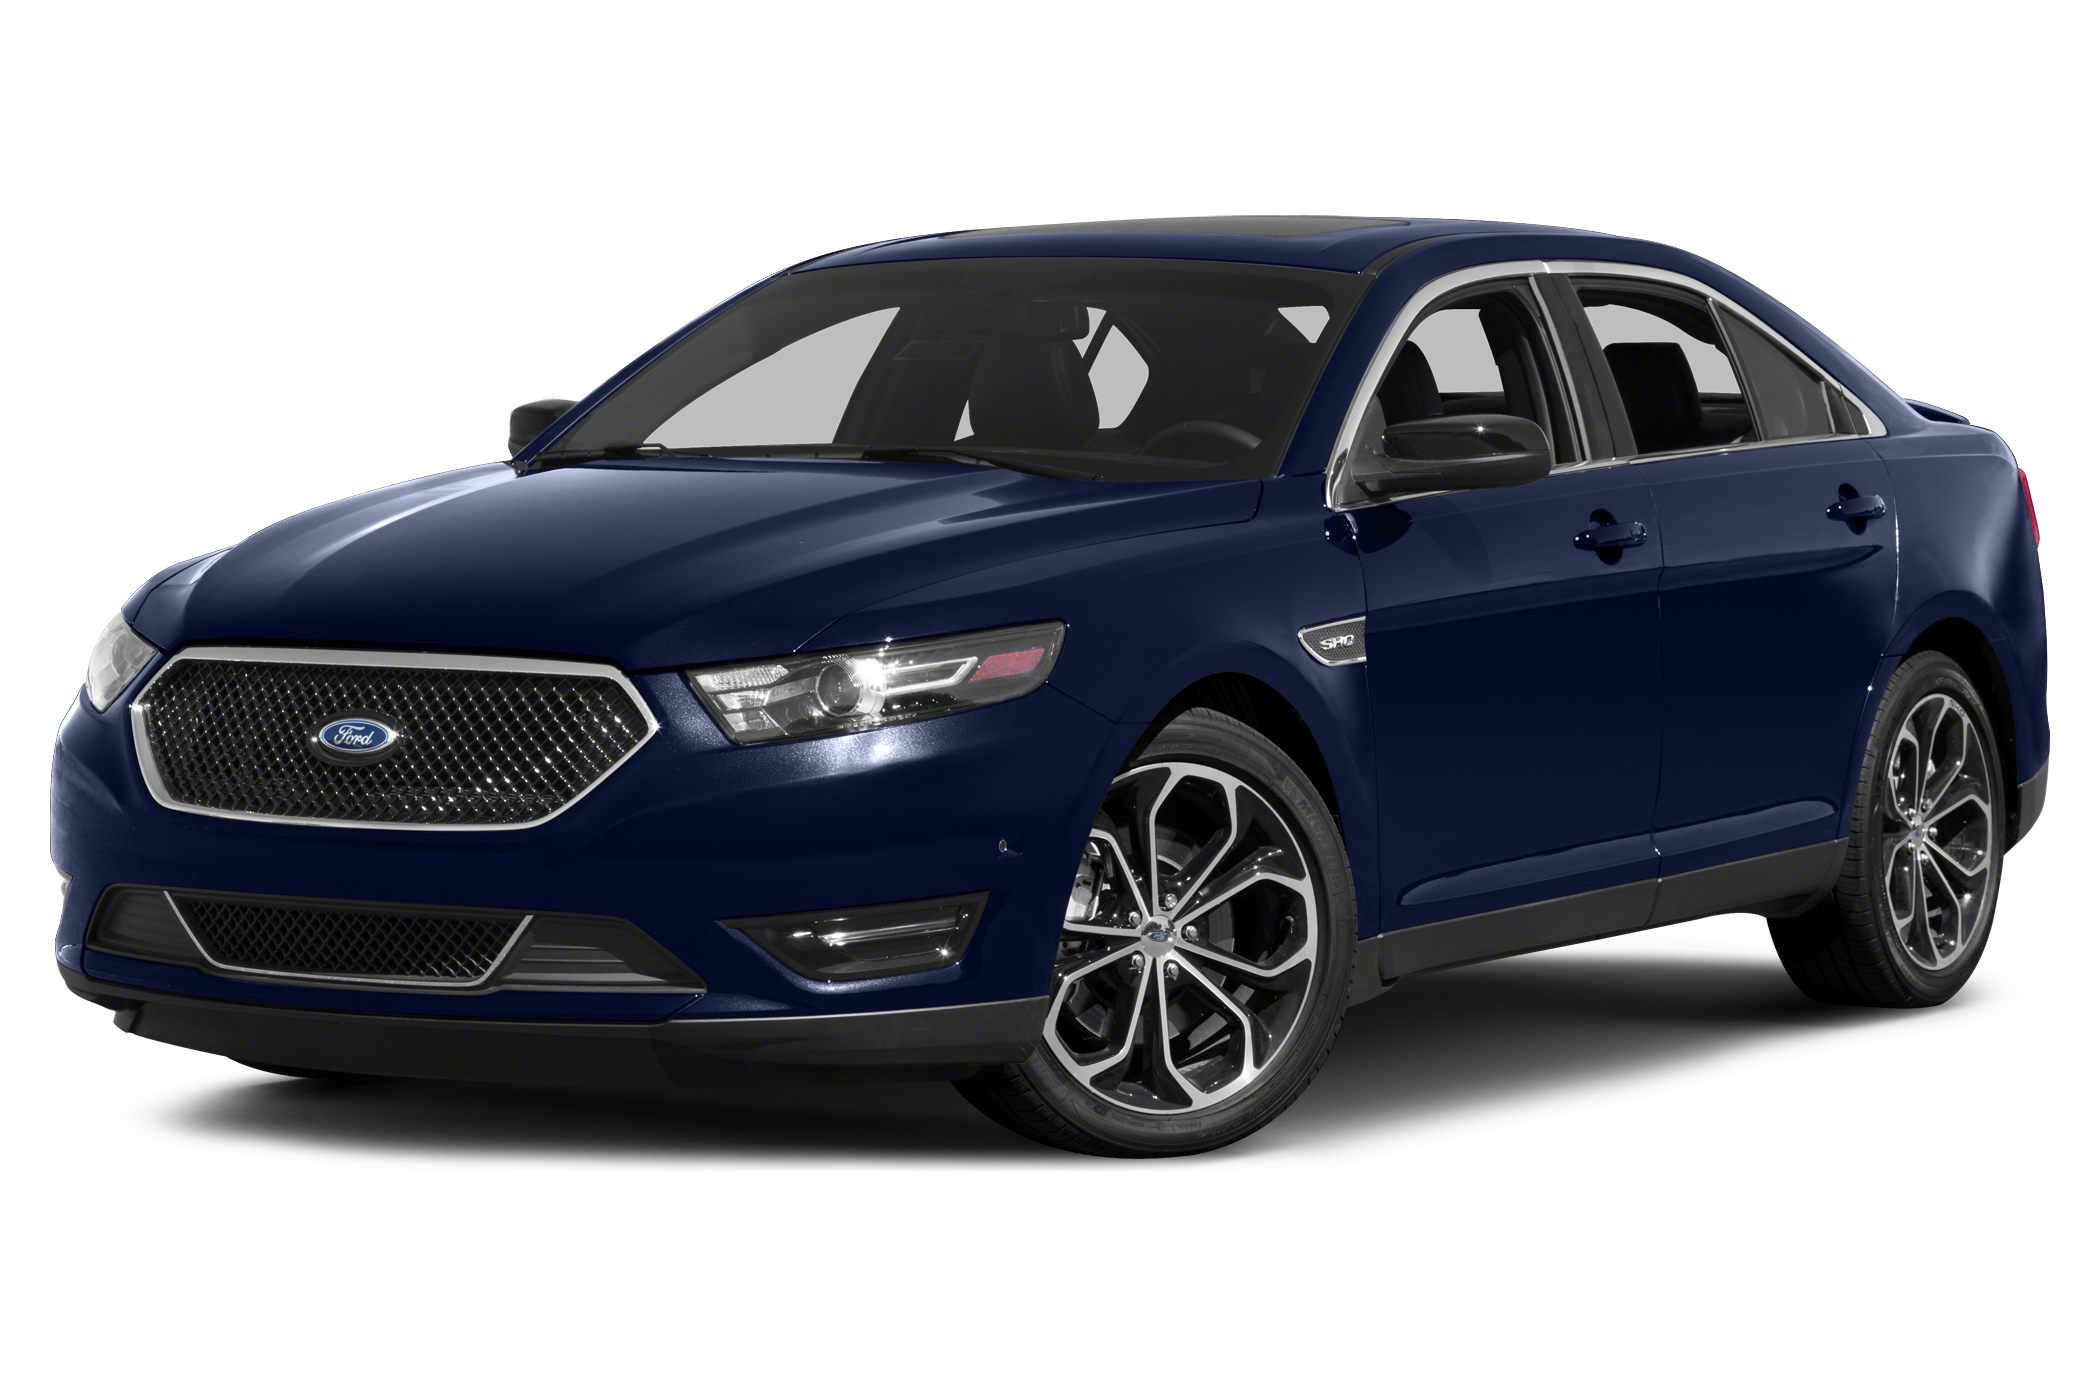 2013 Ford Taurus SHO 4dr All-wheel Drive Sedan Specs and Prices